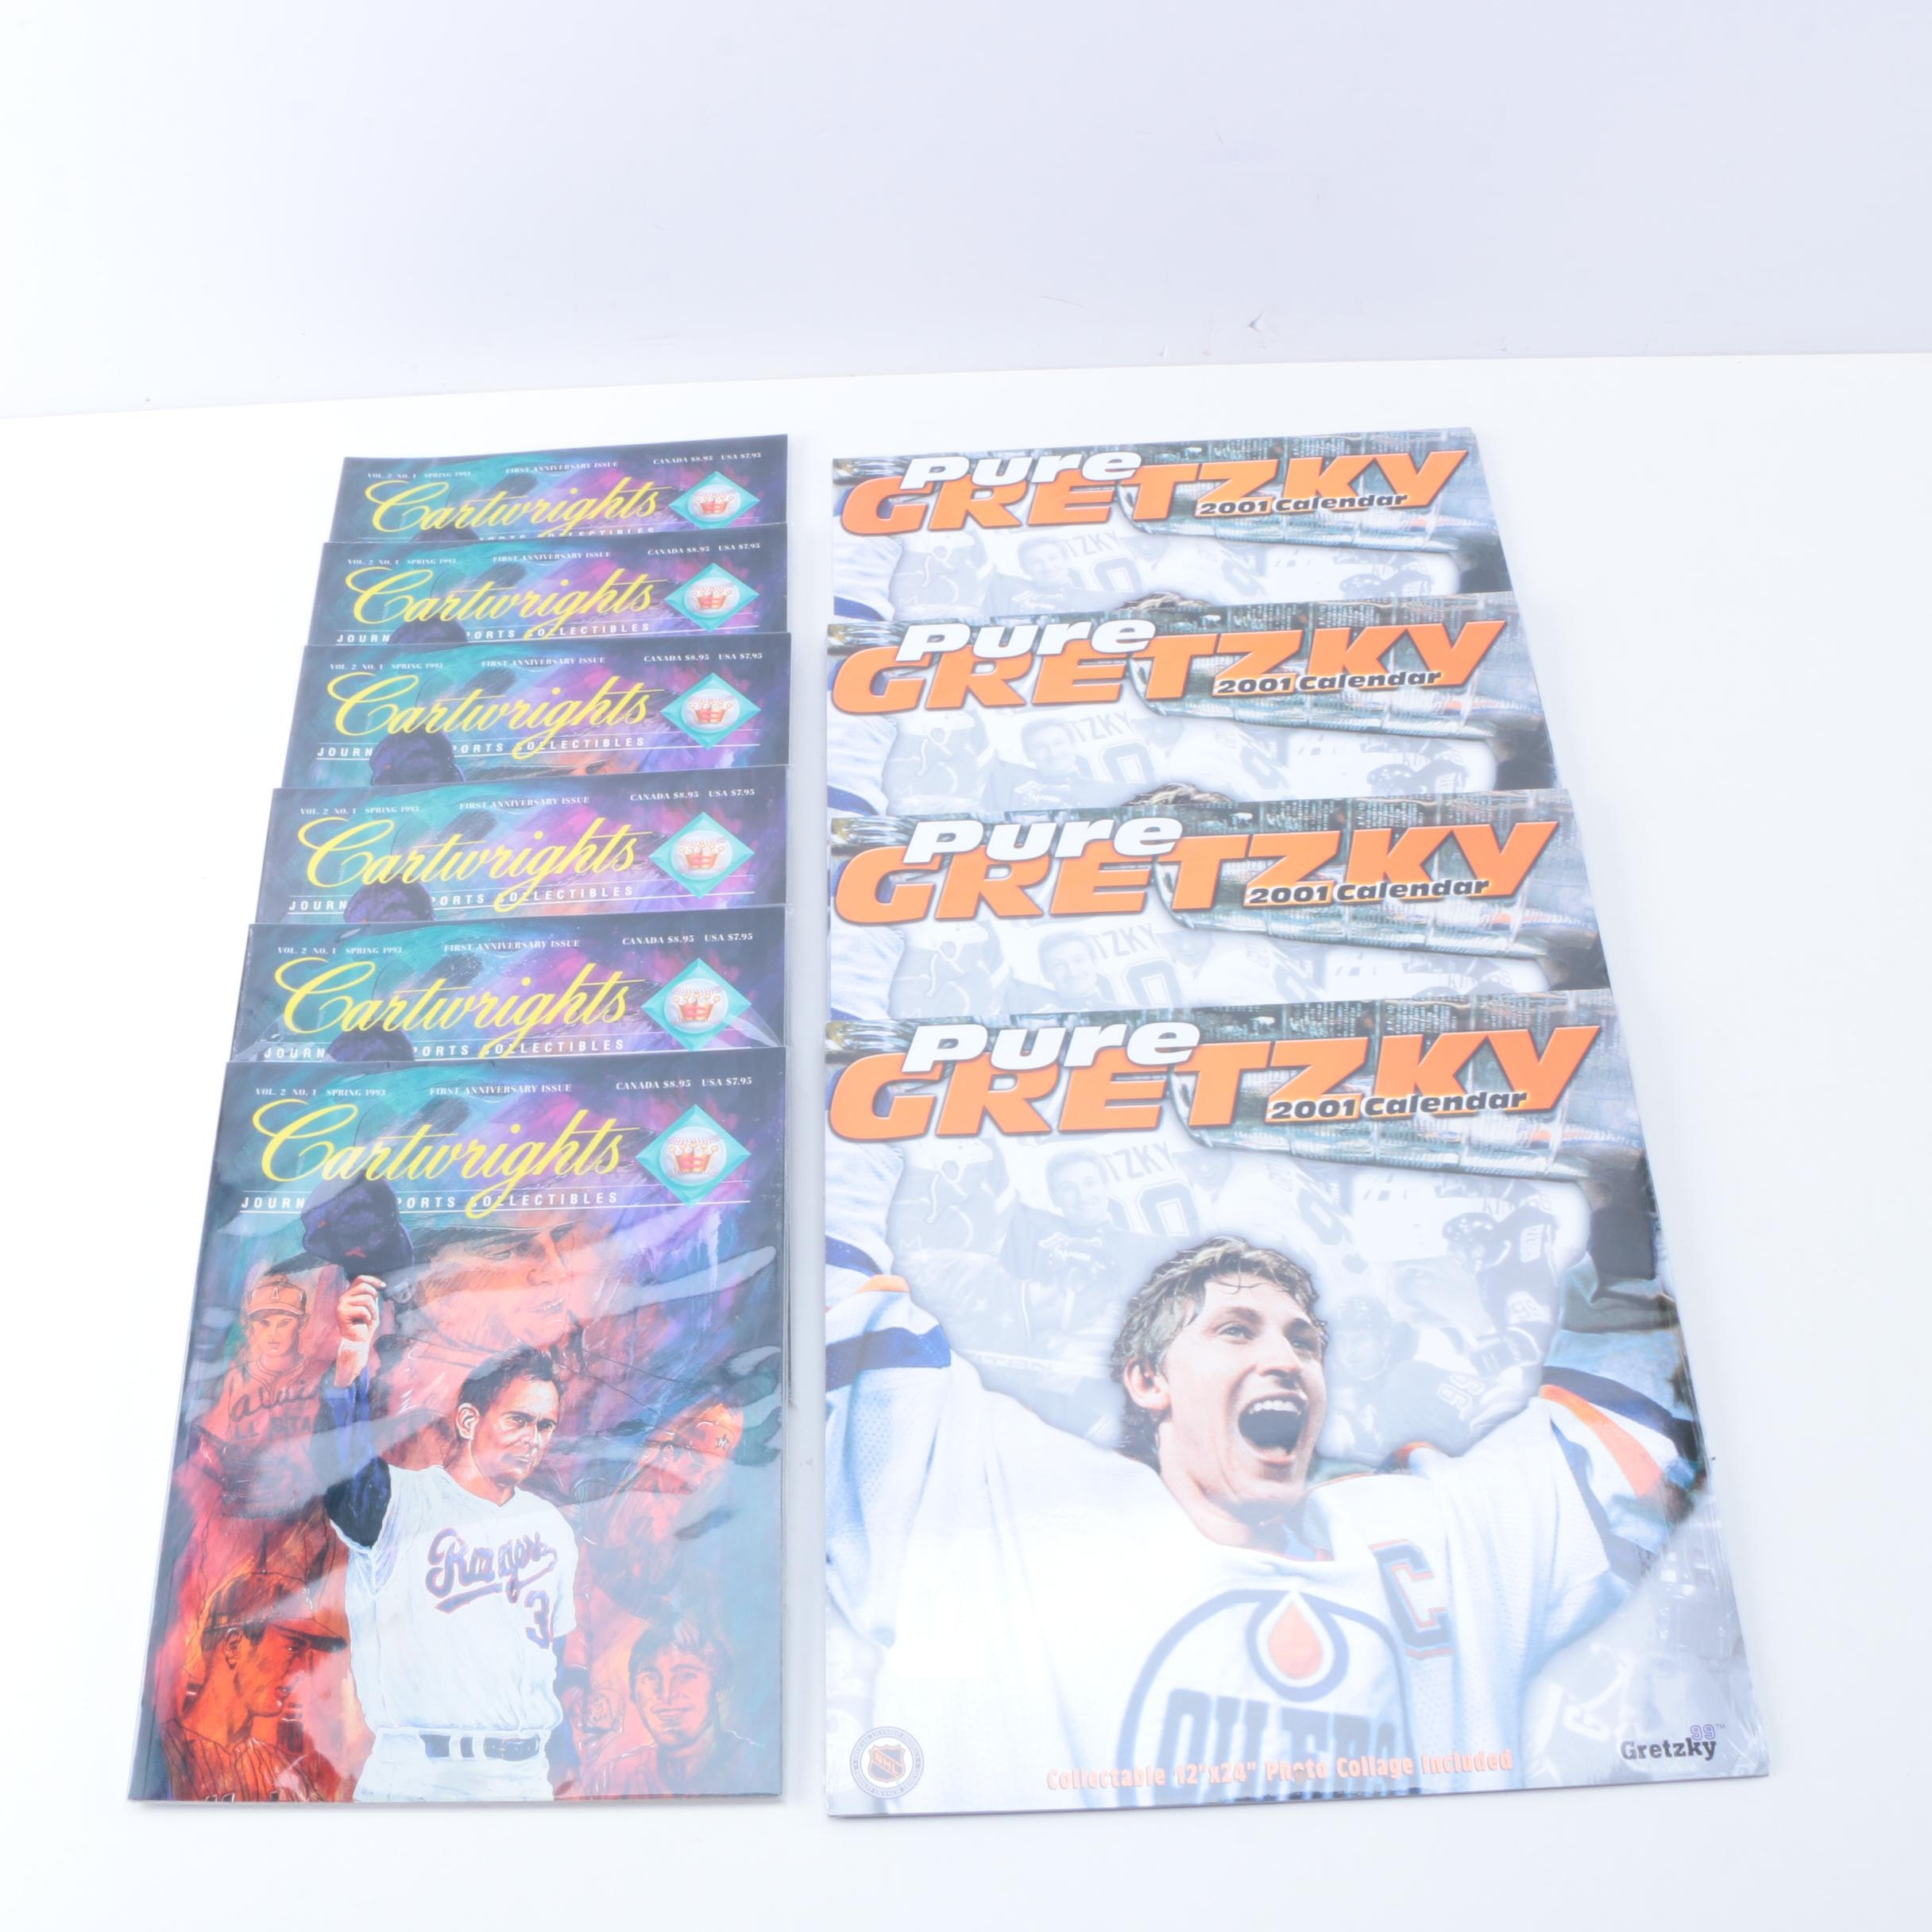 Sports Collectibles Guidebooks with Gretzky Calendars